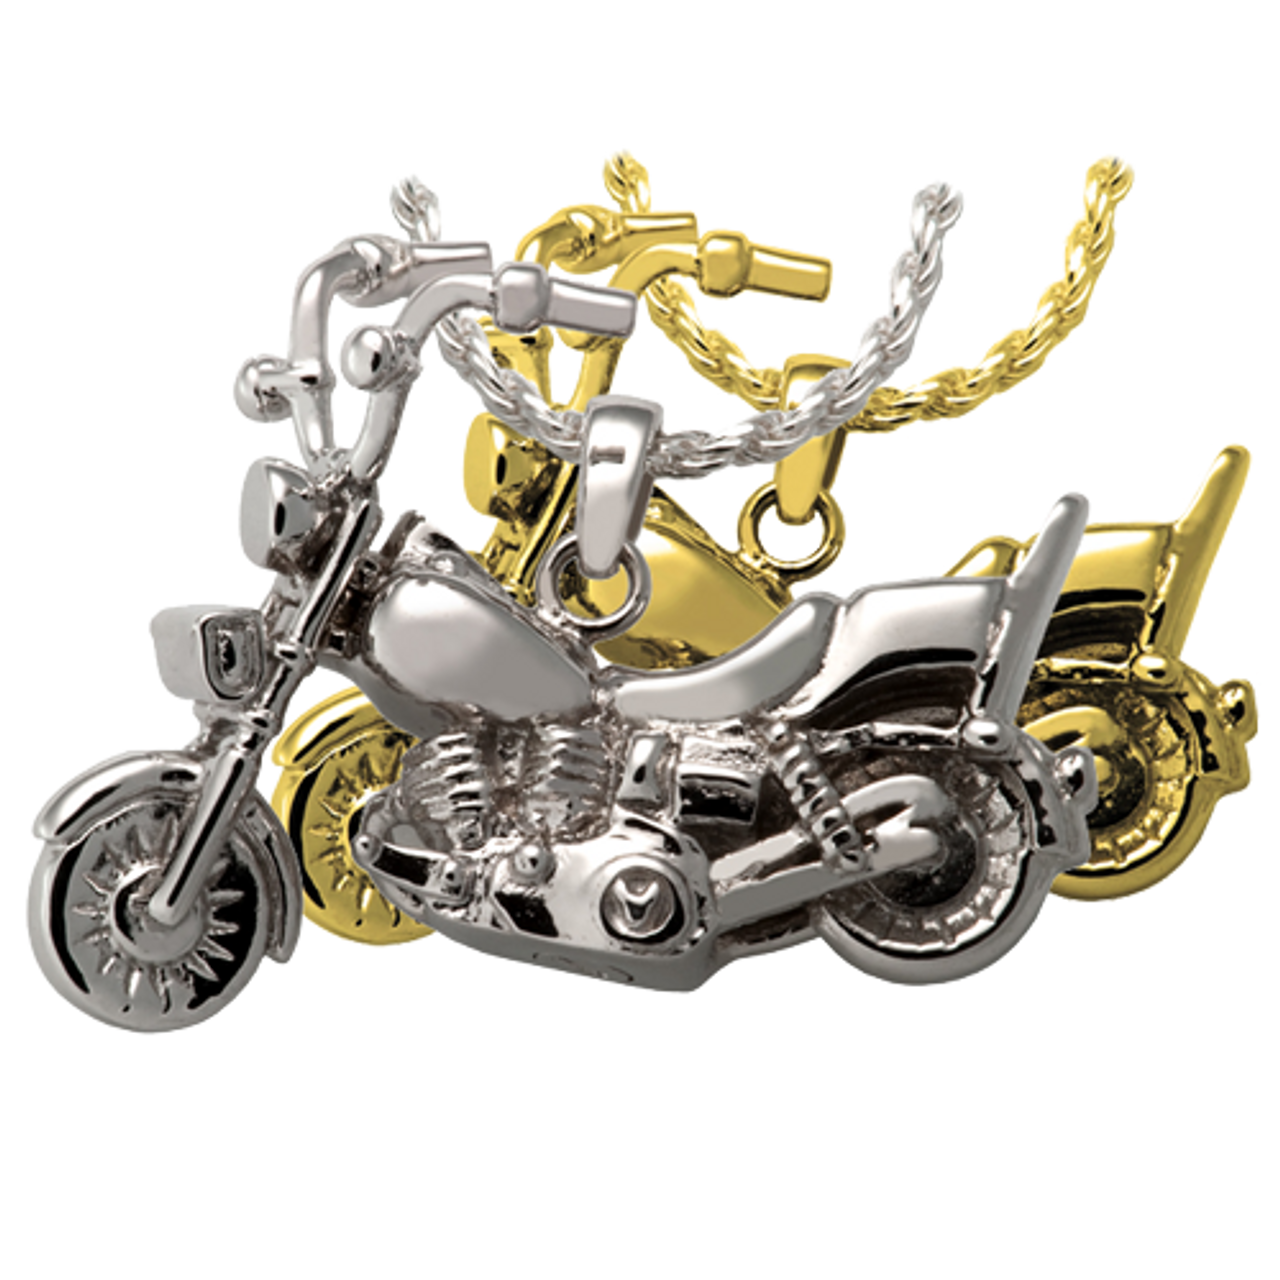 Motorcycle - Sterling Silver with Sterling Silver Rope Chain - Sold Separately Motorcycle - Gold Plated over Sterling Silver with Gold Filled Rope Chain - Sold Separately